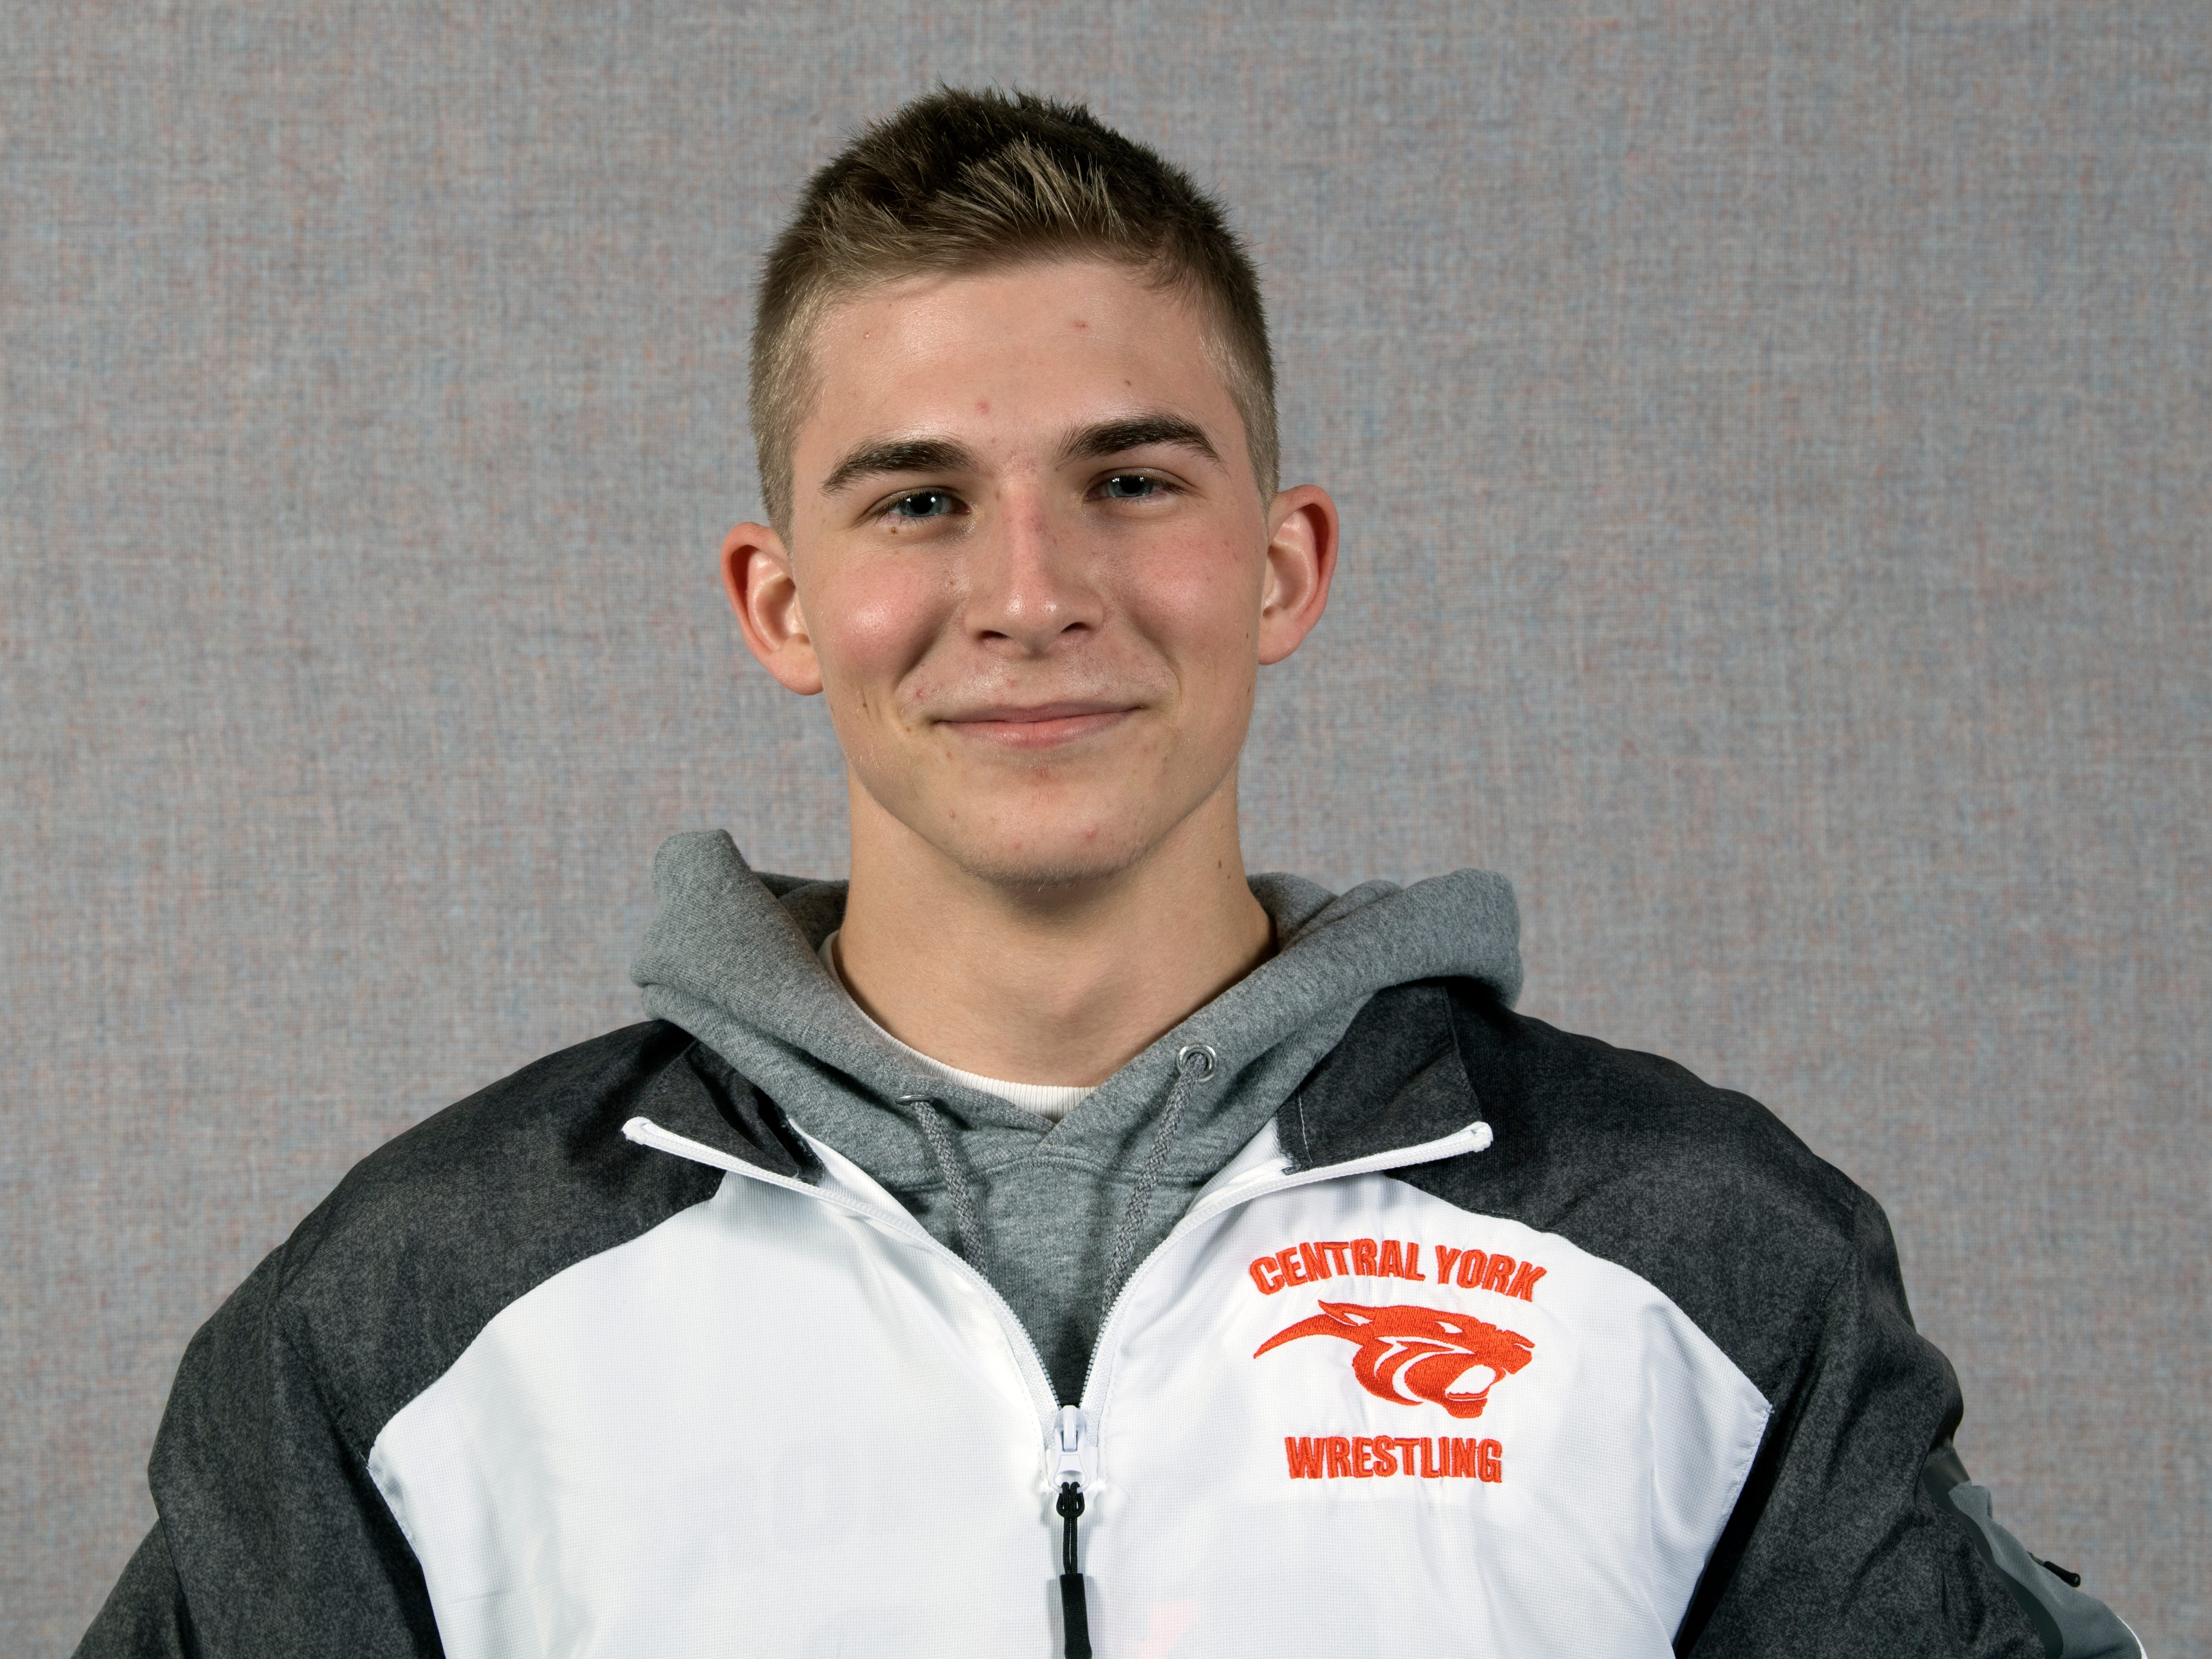 Logan Paluch, of the Central York wrestling team, during the 2018-19 GameTimePa YAIAA Winter Media Day Sunday November 11, 2018.